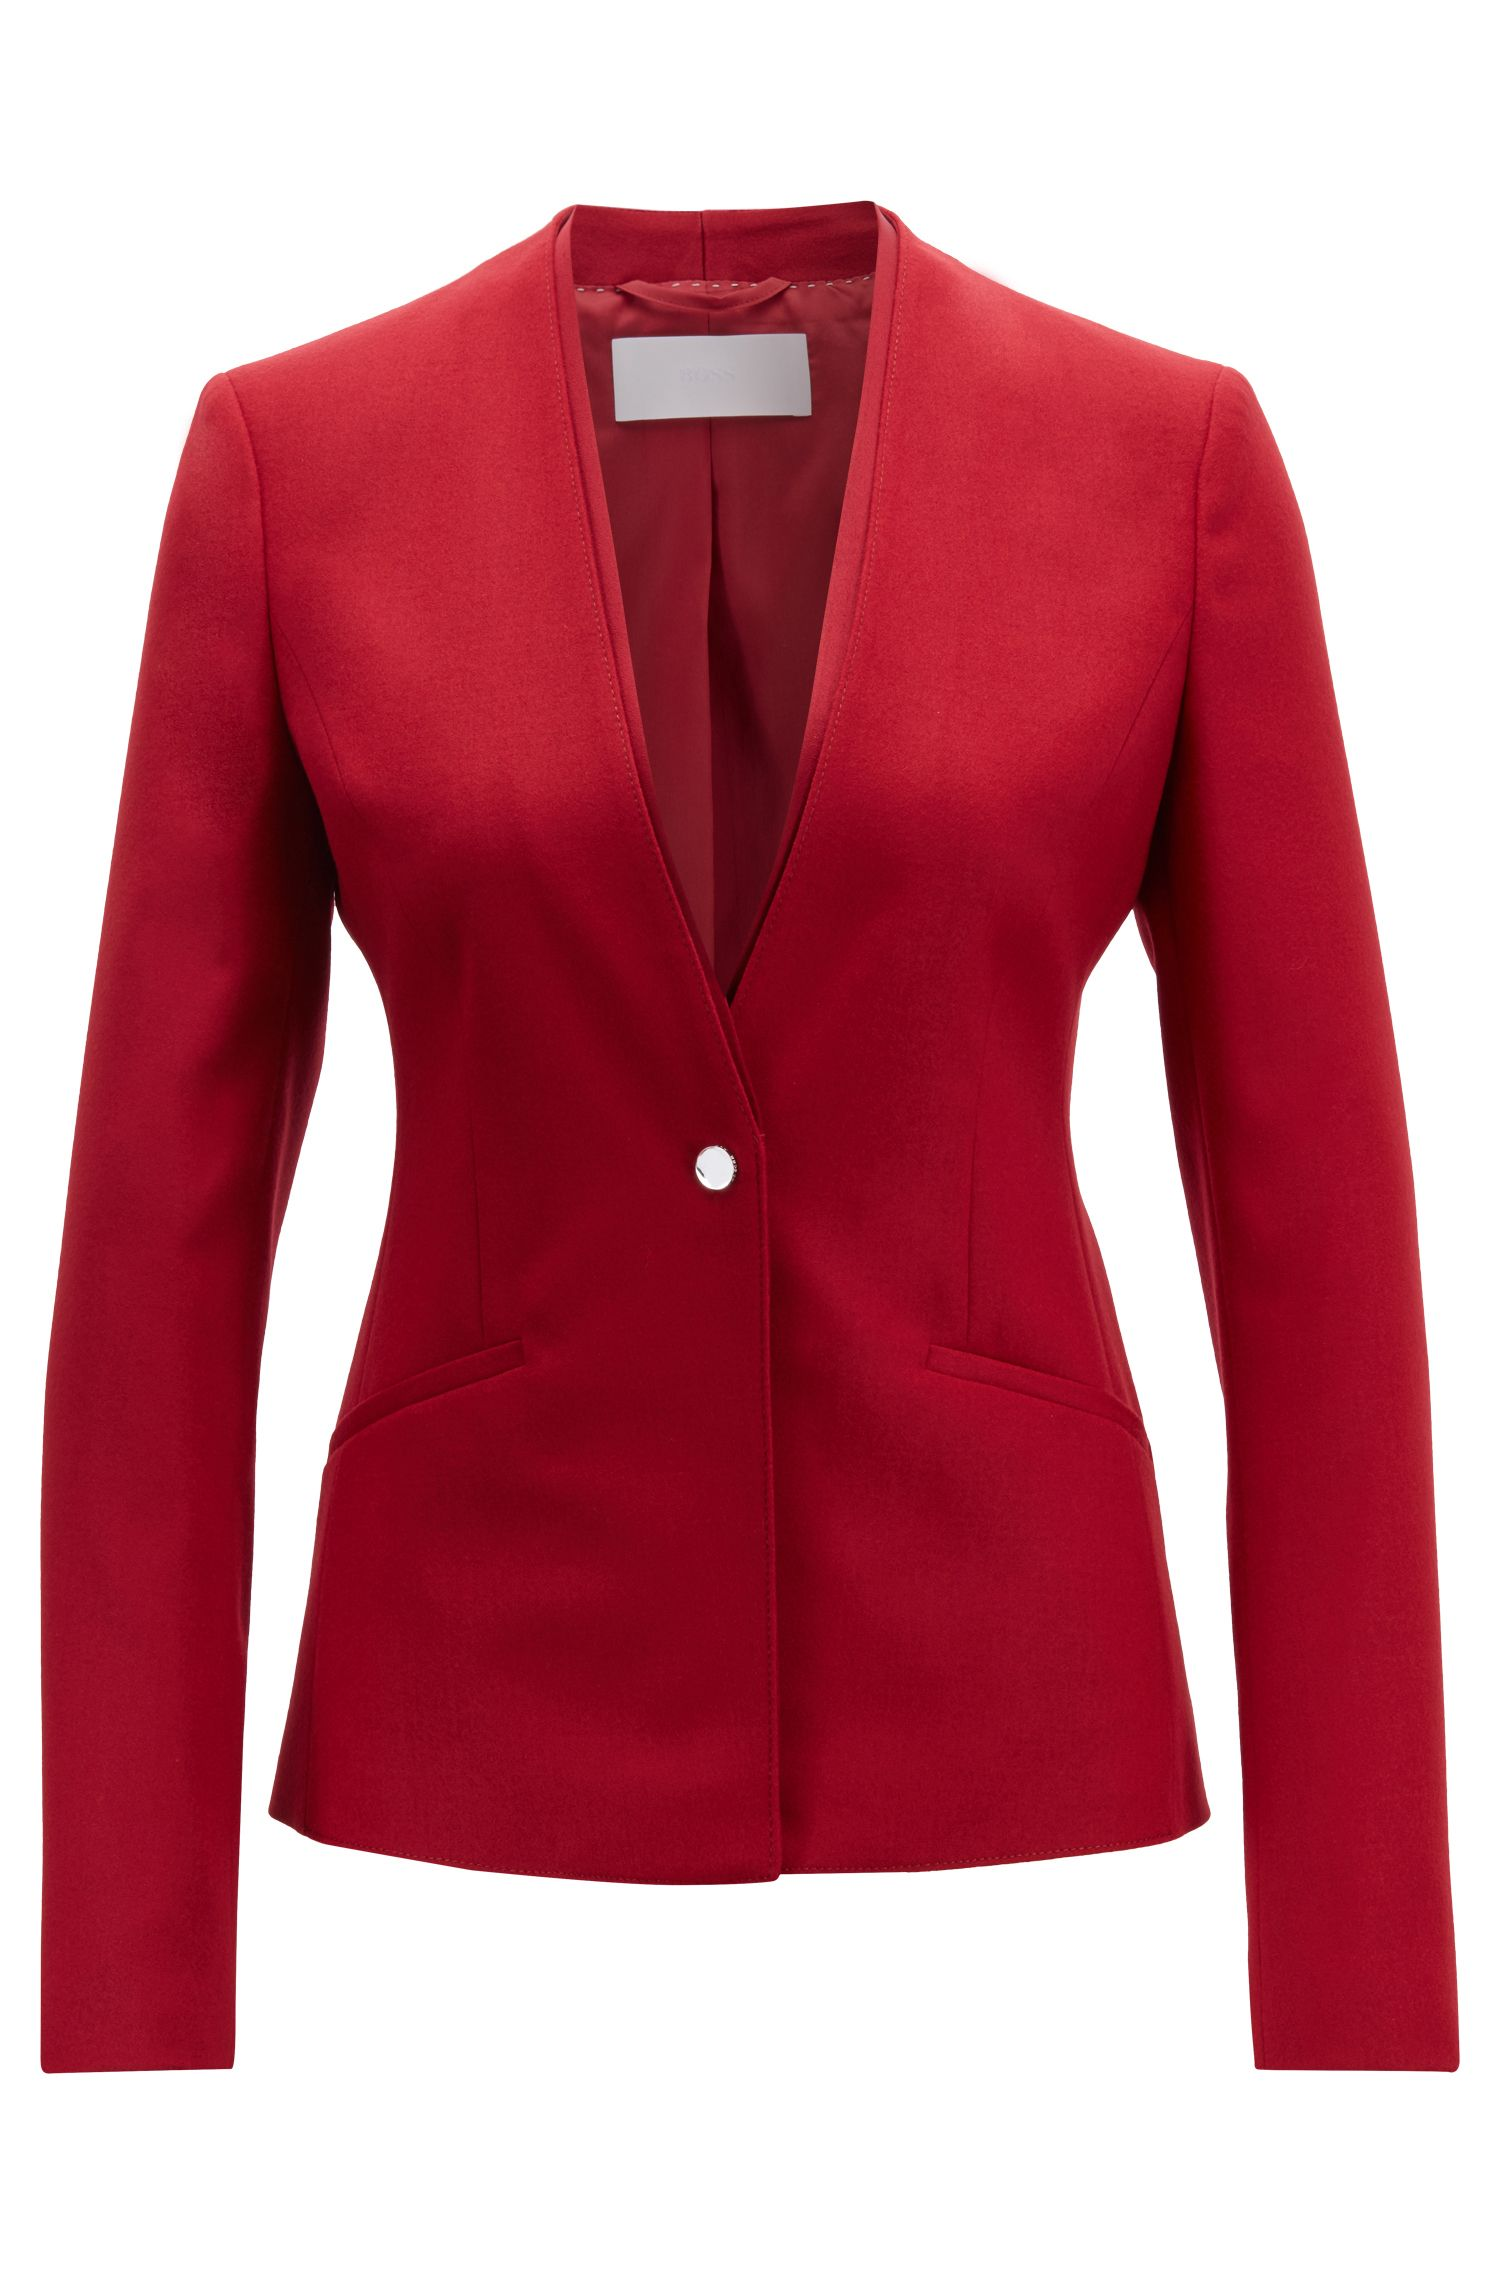 Veste Regular Fit à un bouton en laine vierge stretch, Rouge sombre